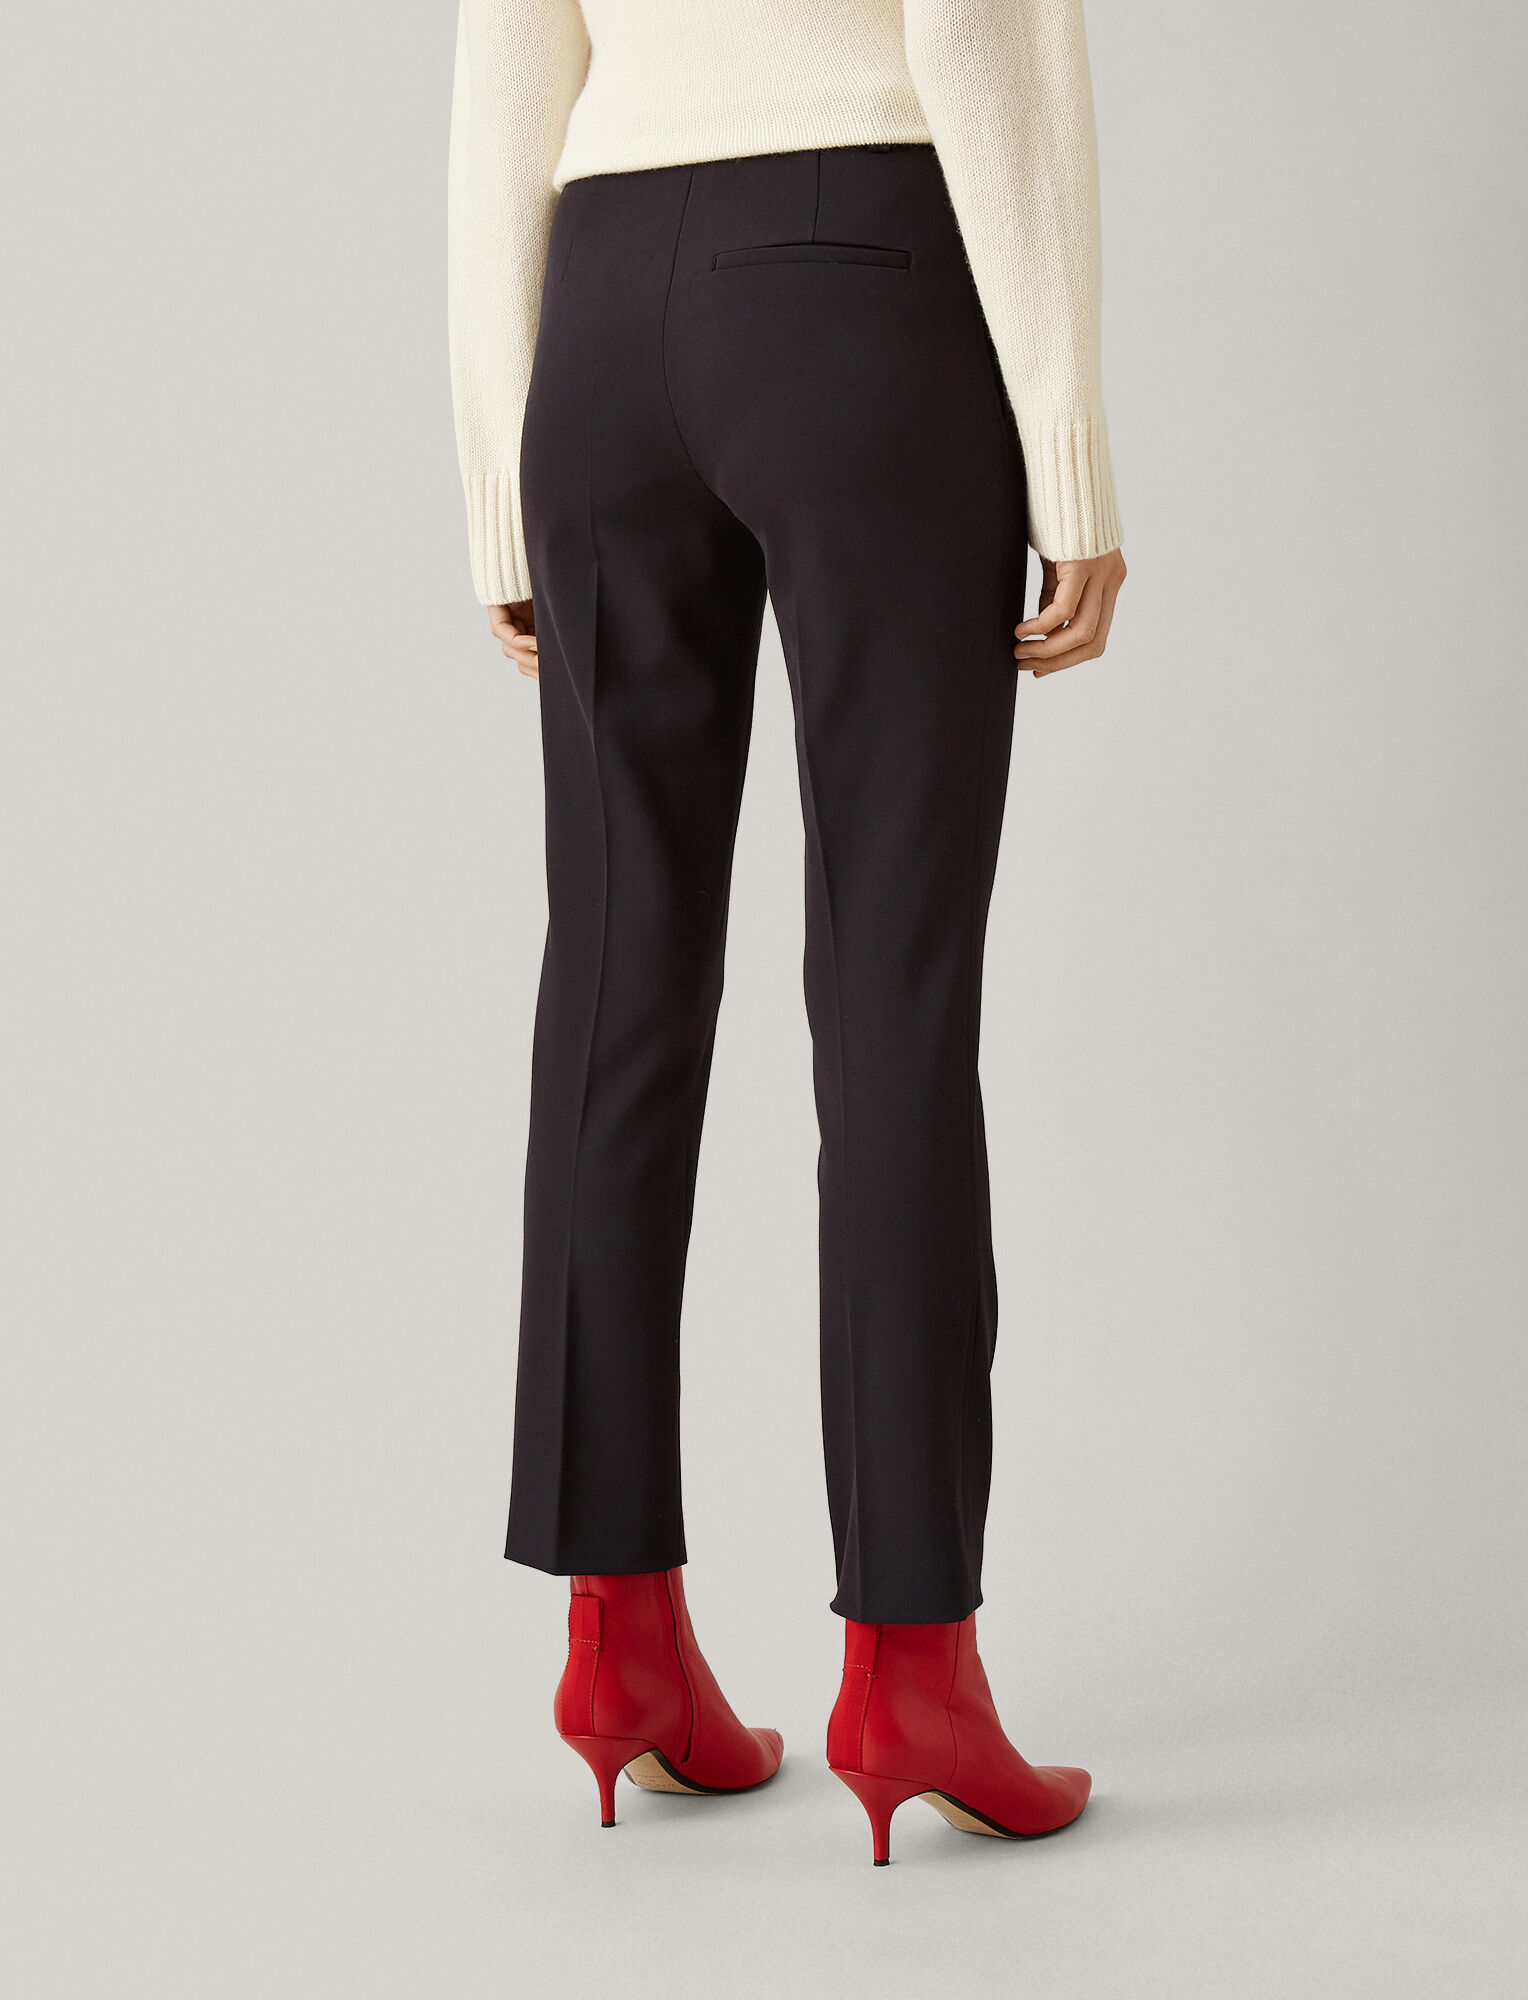 Joseph, Zoom Comfort Wool Trousers, in NAVY